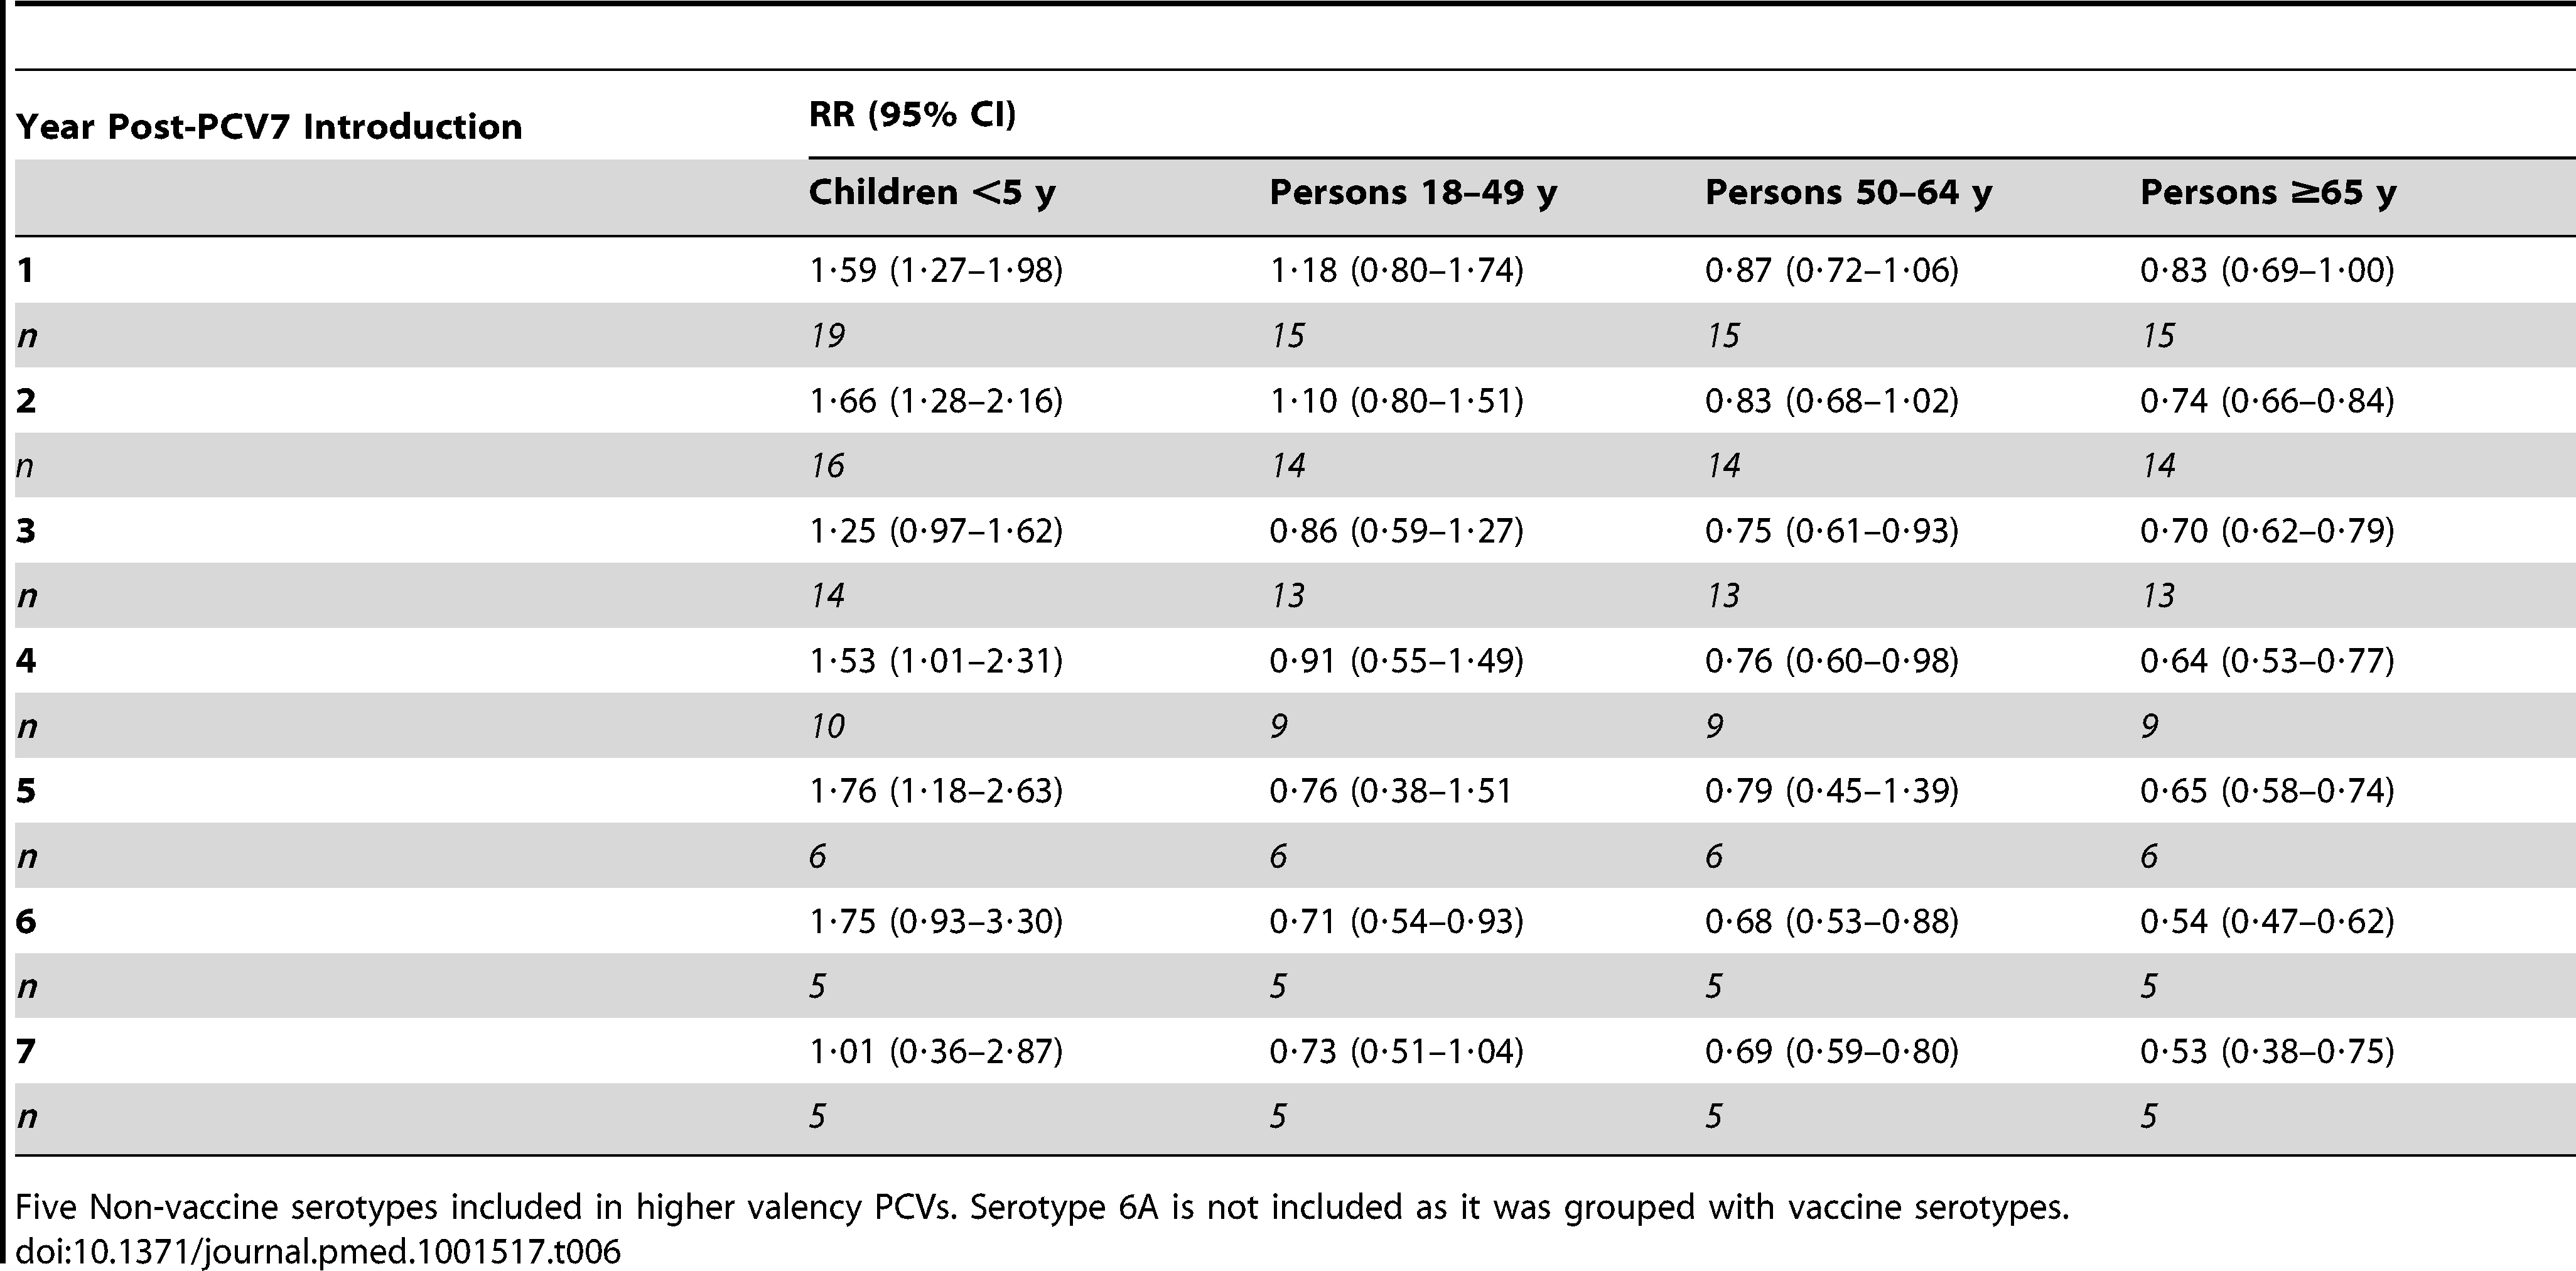 Summary rate ratios comparing the rate of serotypes 1, 3, 5, 7F, and 19A over the rate of all other non-vaccine types in each year post-PCV7 introduction, from random effects meta-analysis.